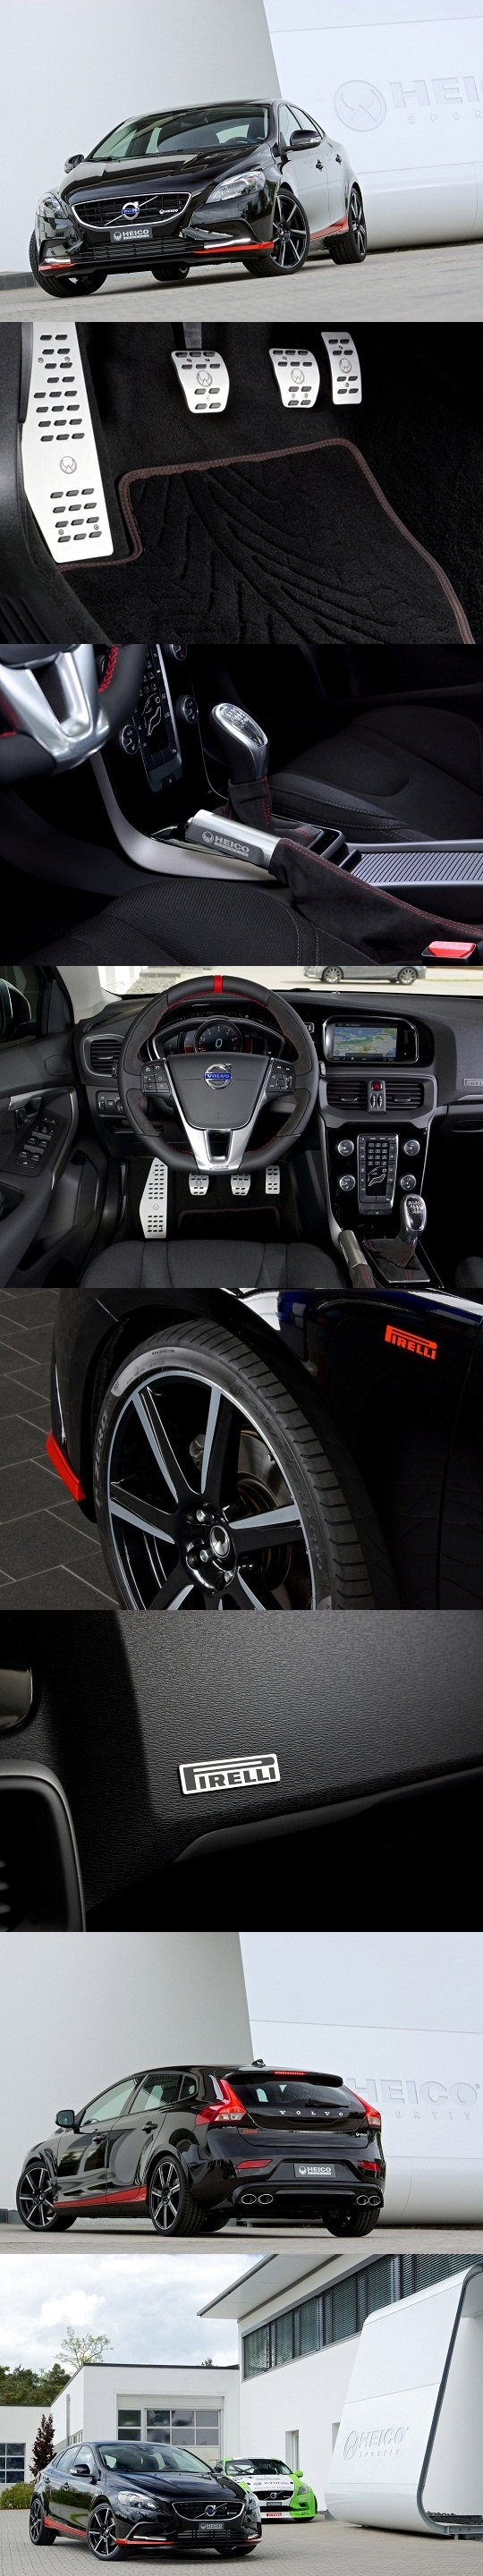 Volvo V40 Pirelli Edition by Heico Sportiv arrangements